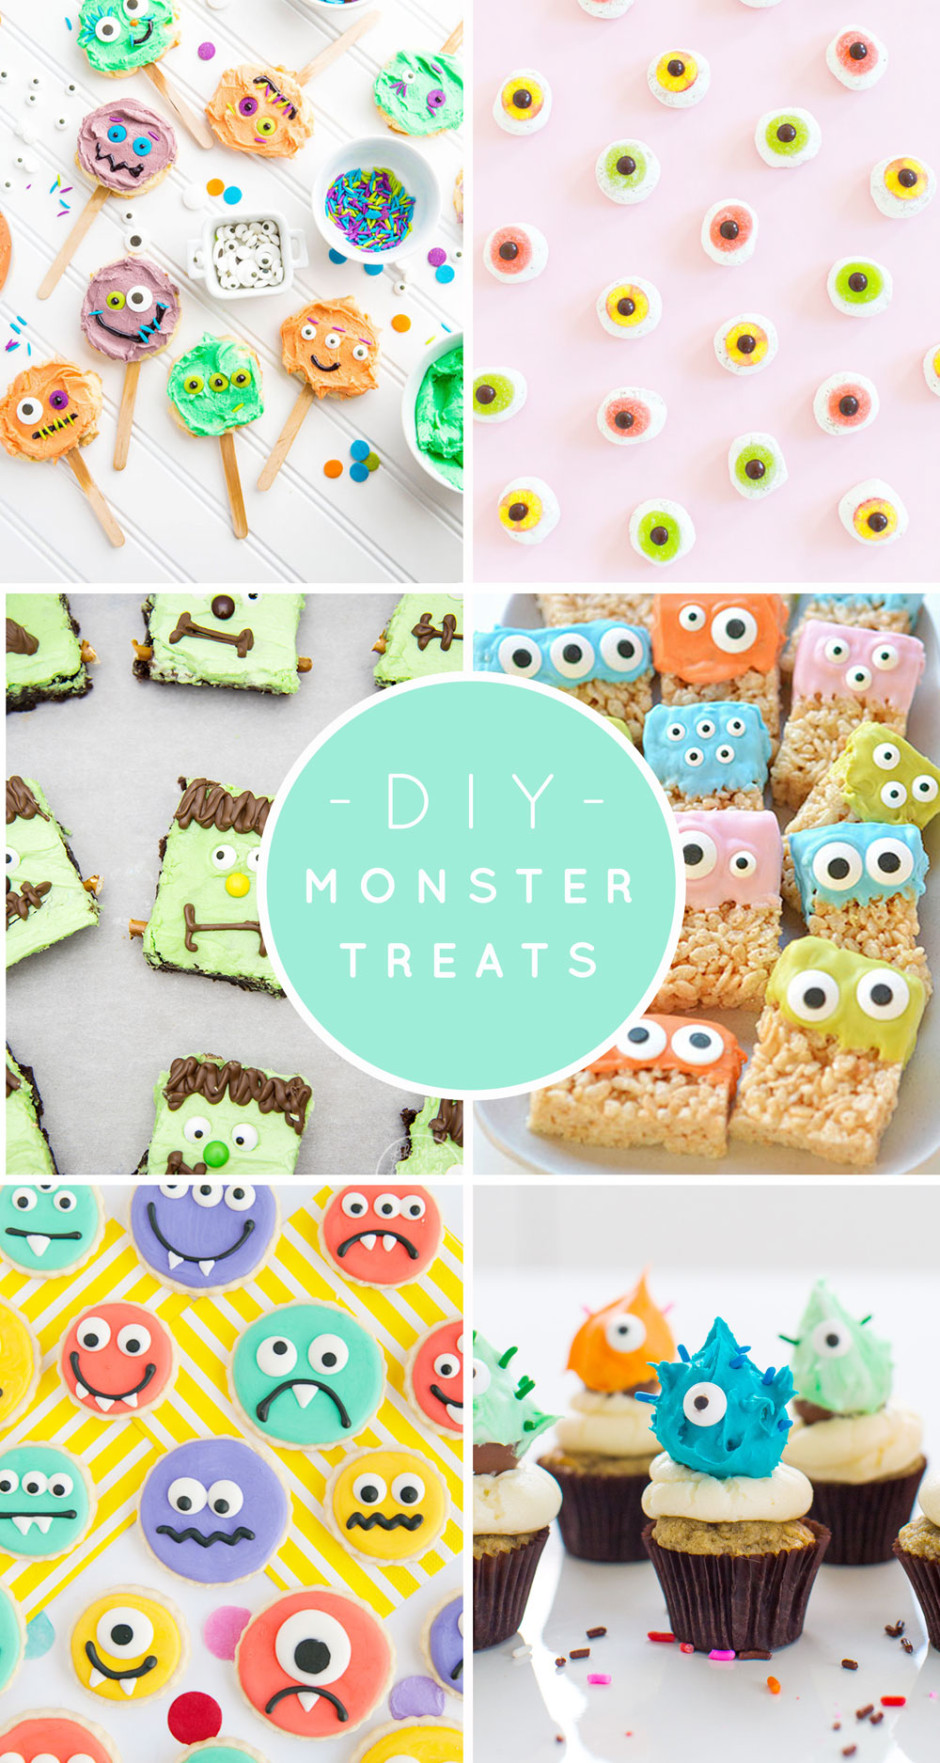 Monster-treat-DIY-ideas-to-try-this-Halloween----